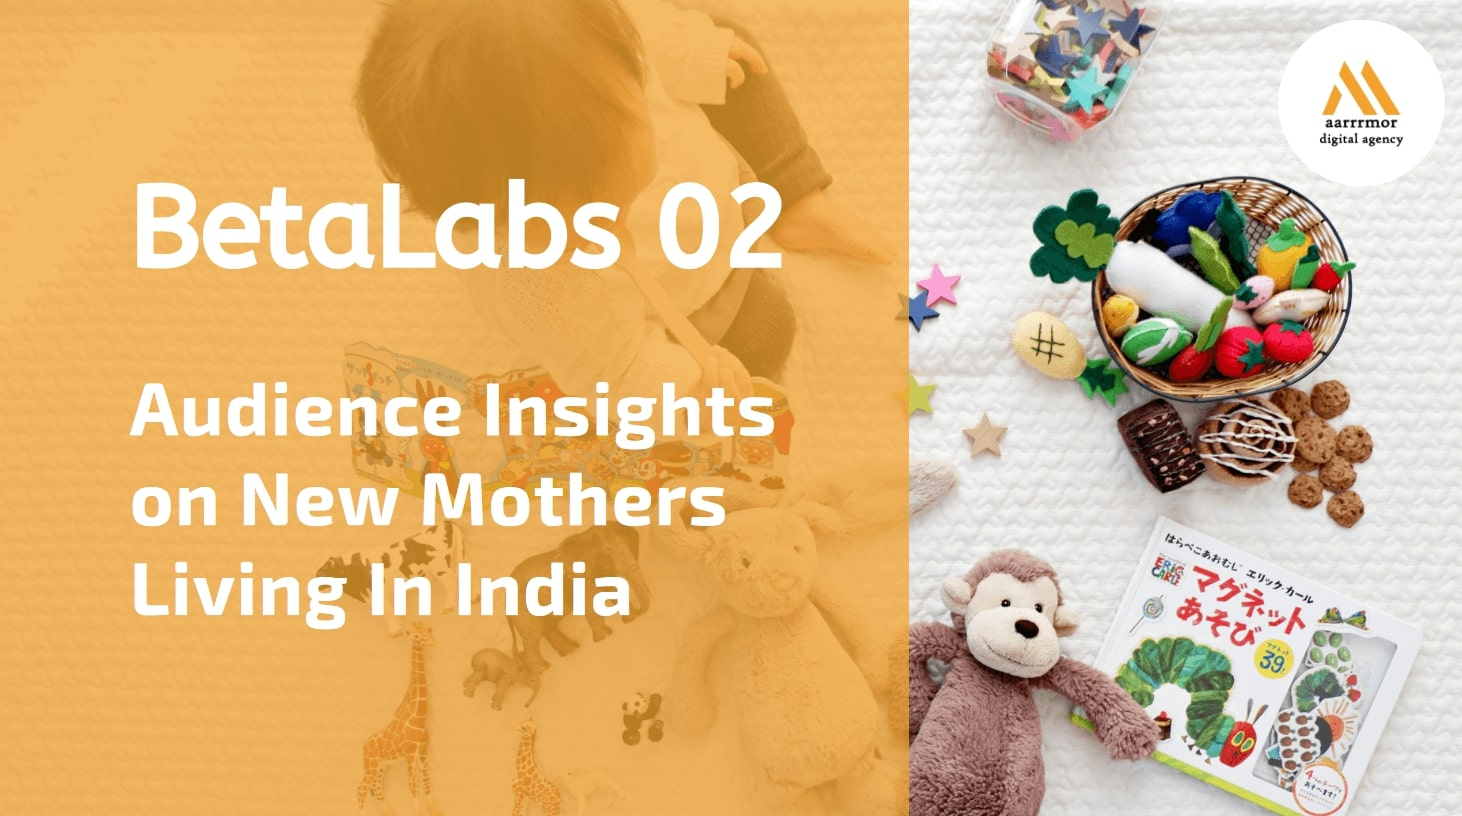 BetaLabs 02: Audience Insights on New Mothers living in India